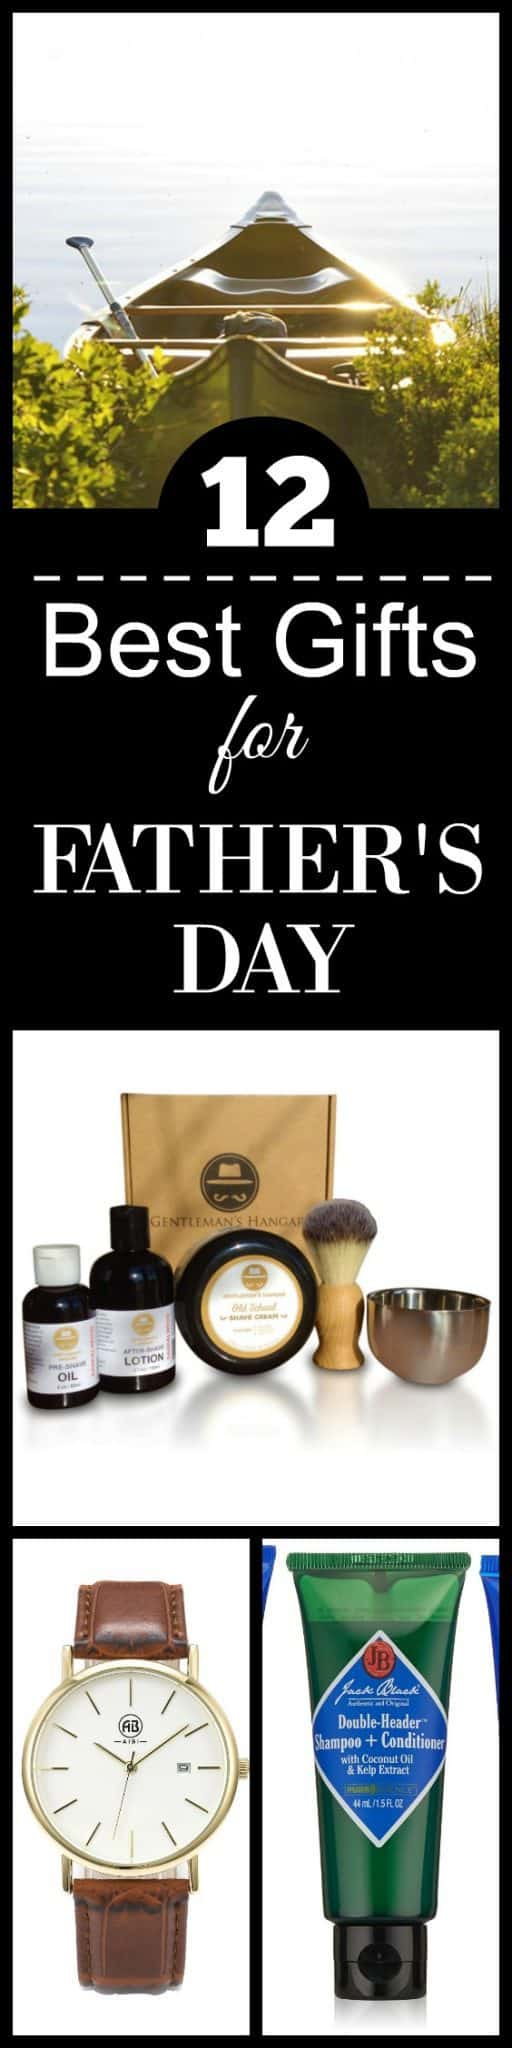 Father's Day is just around the corner, which means it's time to start thinking about gift ideas. We have a few ideas. 31Daily.com